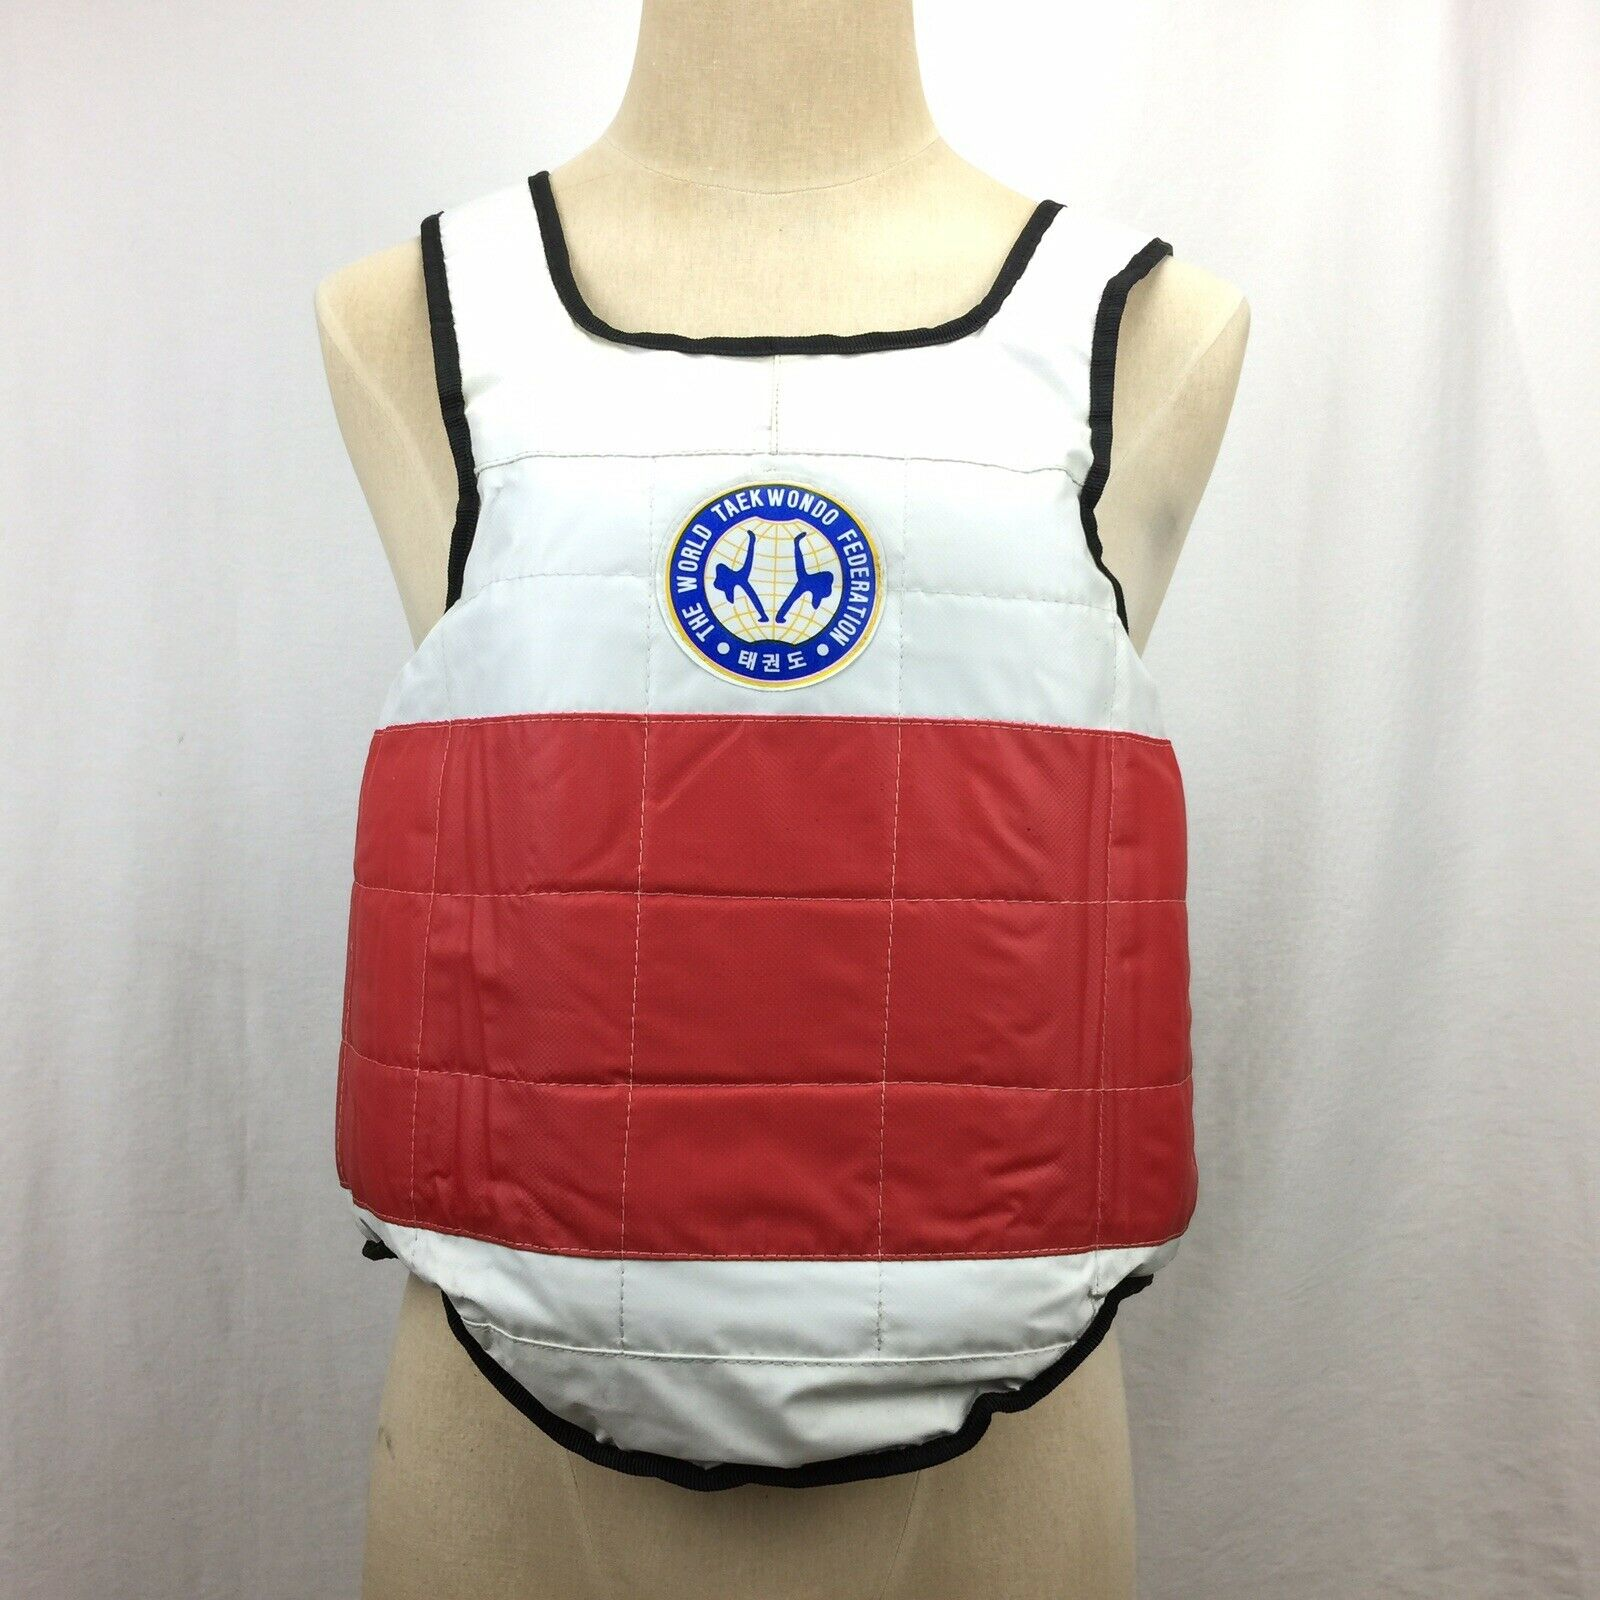 Taekwondo Chest Belly Predector Sparring Pad Size M Reversible Red bluee